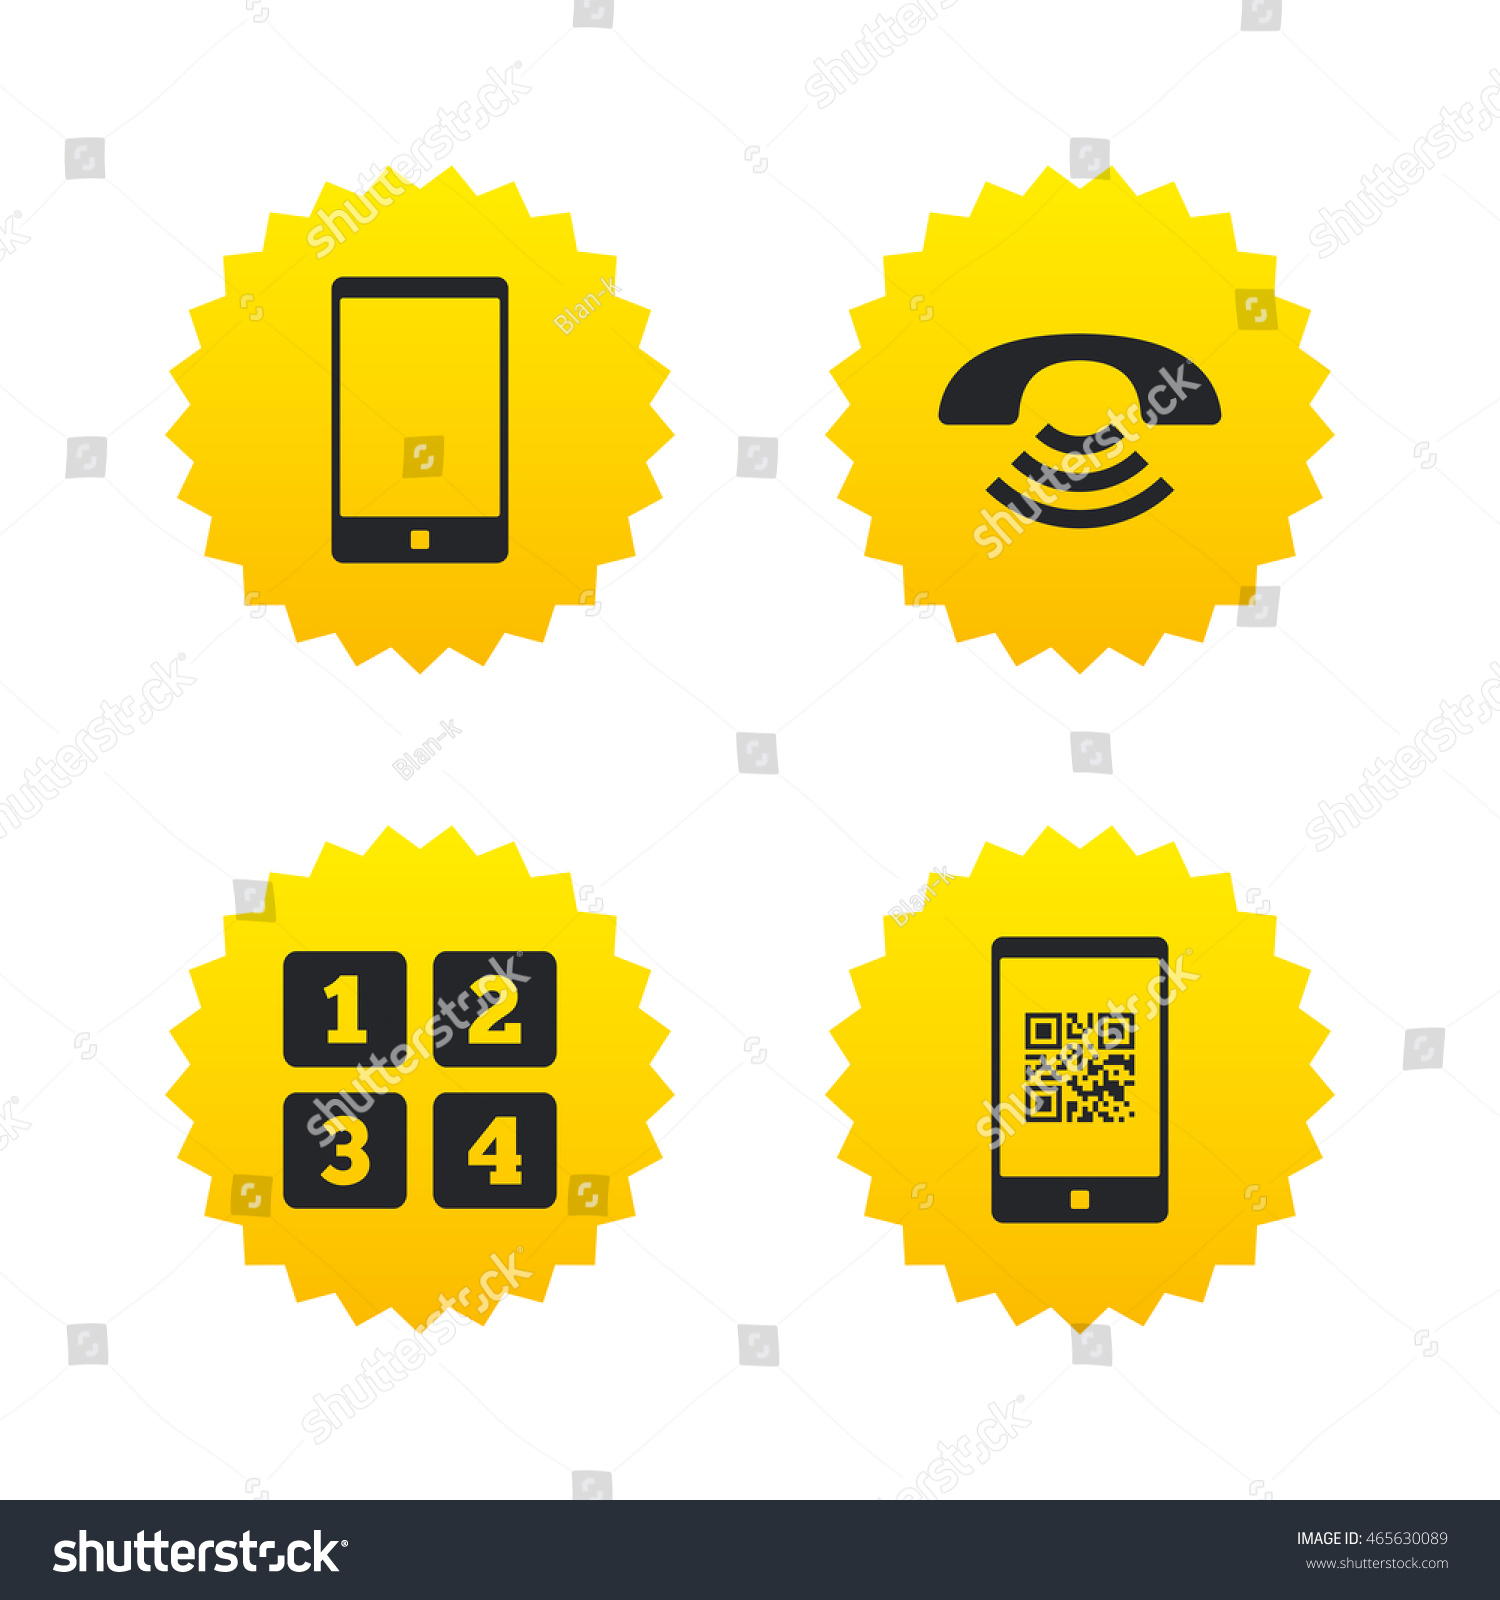 Phone icons smartphone qr code sign stock vector 465630089 phone icons smartphone with qr code sign call center support symbol cellphone keyboard biocorpaavc